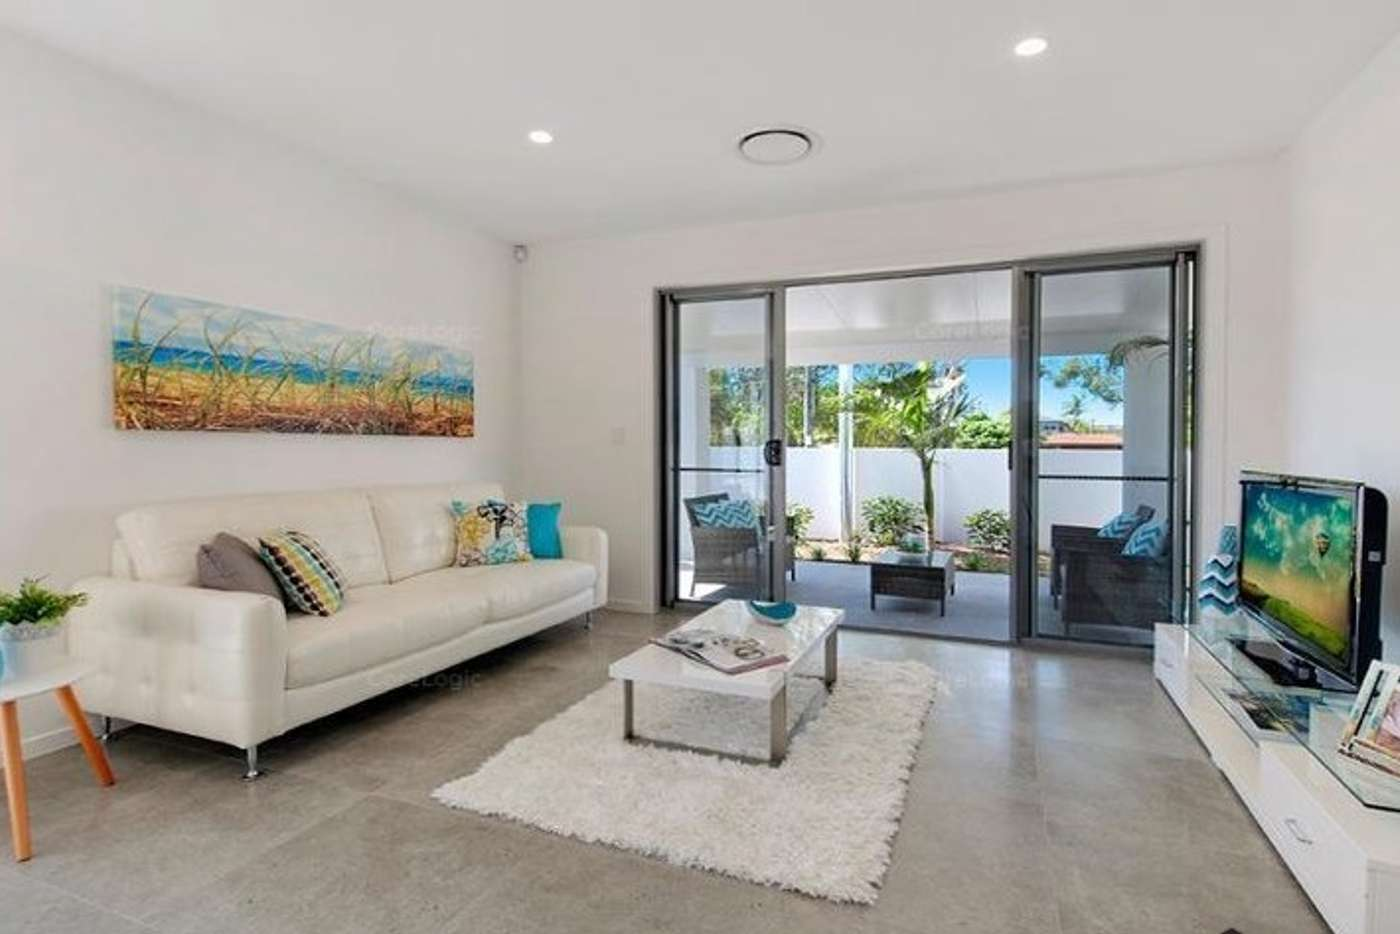 Fifth view of Homely townhouse listing, 1/7 Bambarra Street, Southport QLD 4215